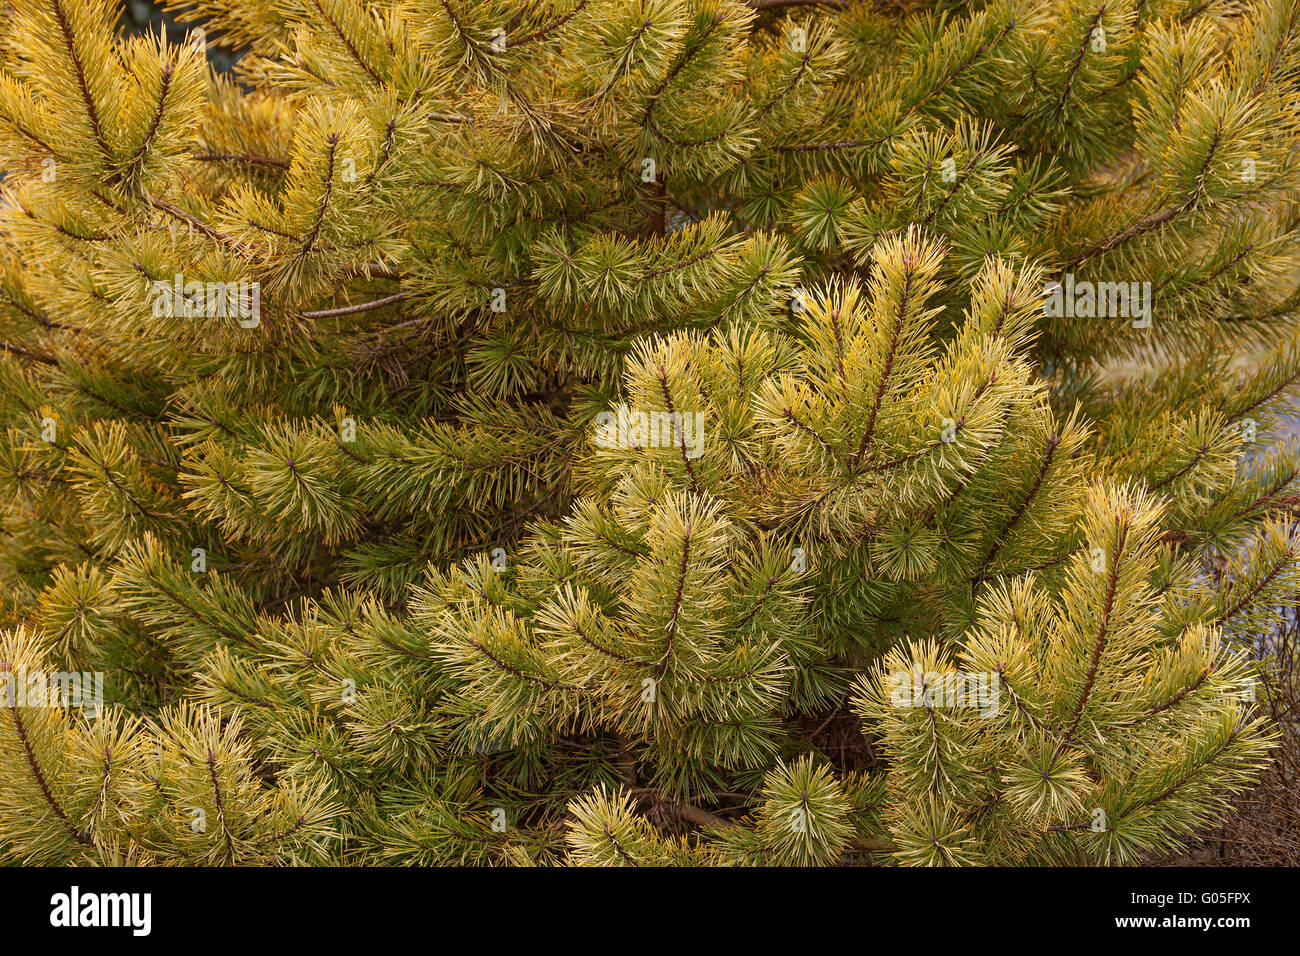 Gold coin golden scotch pine - Stock Image